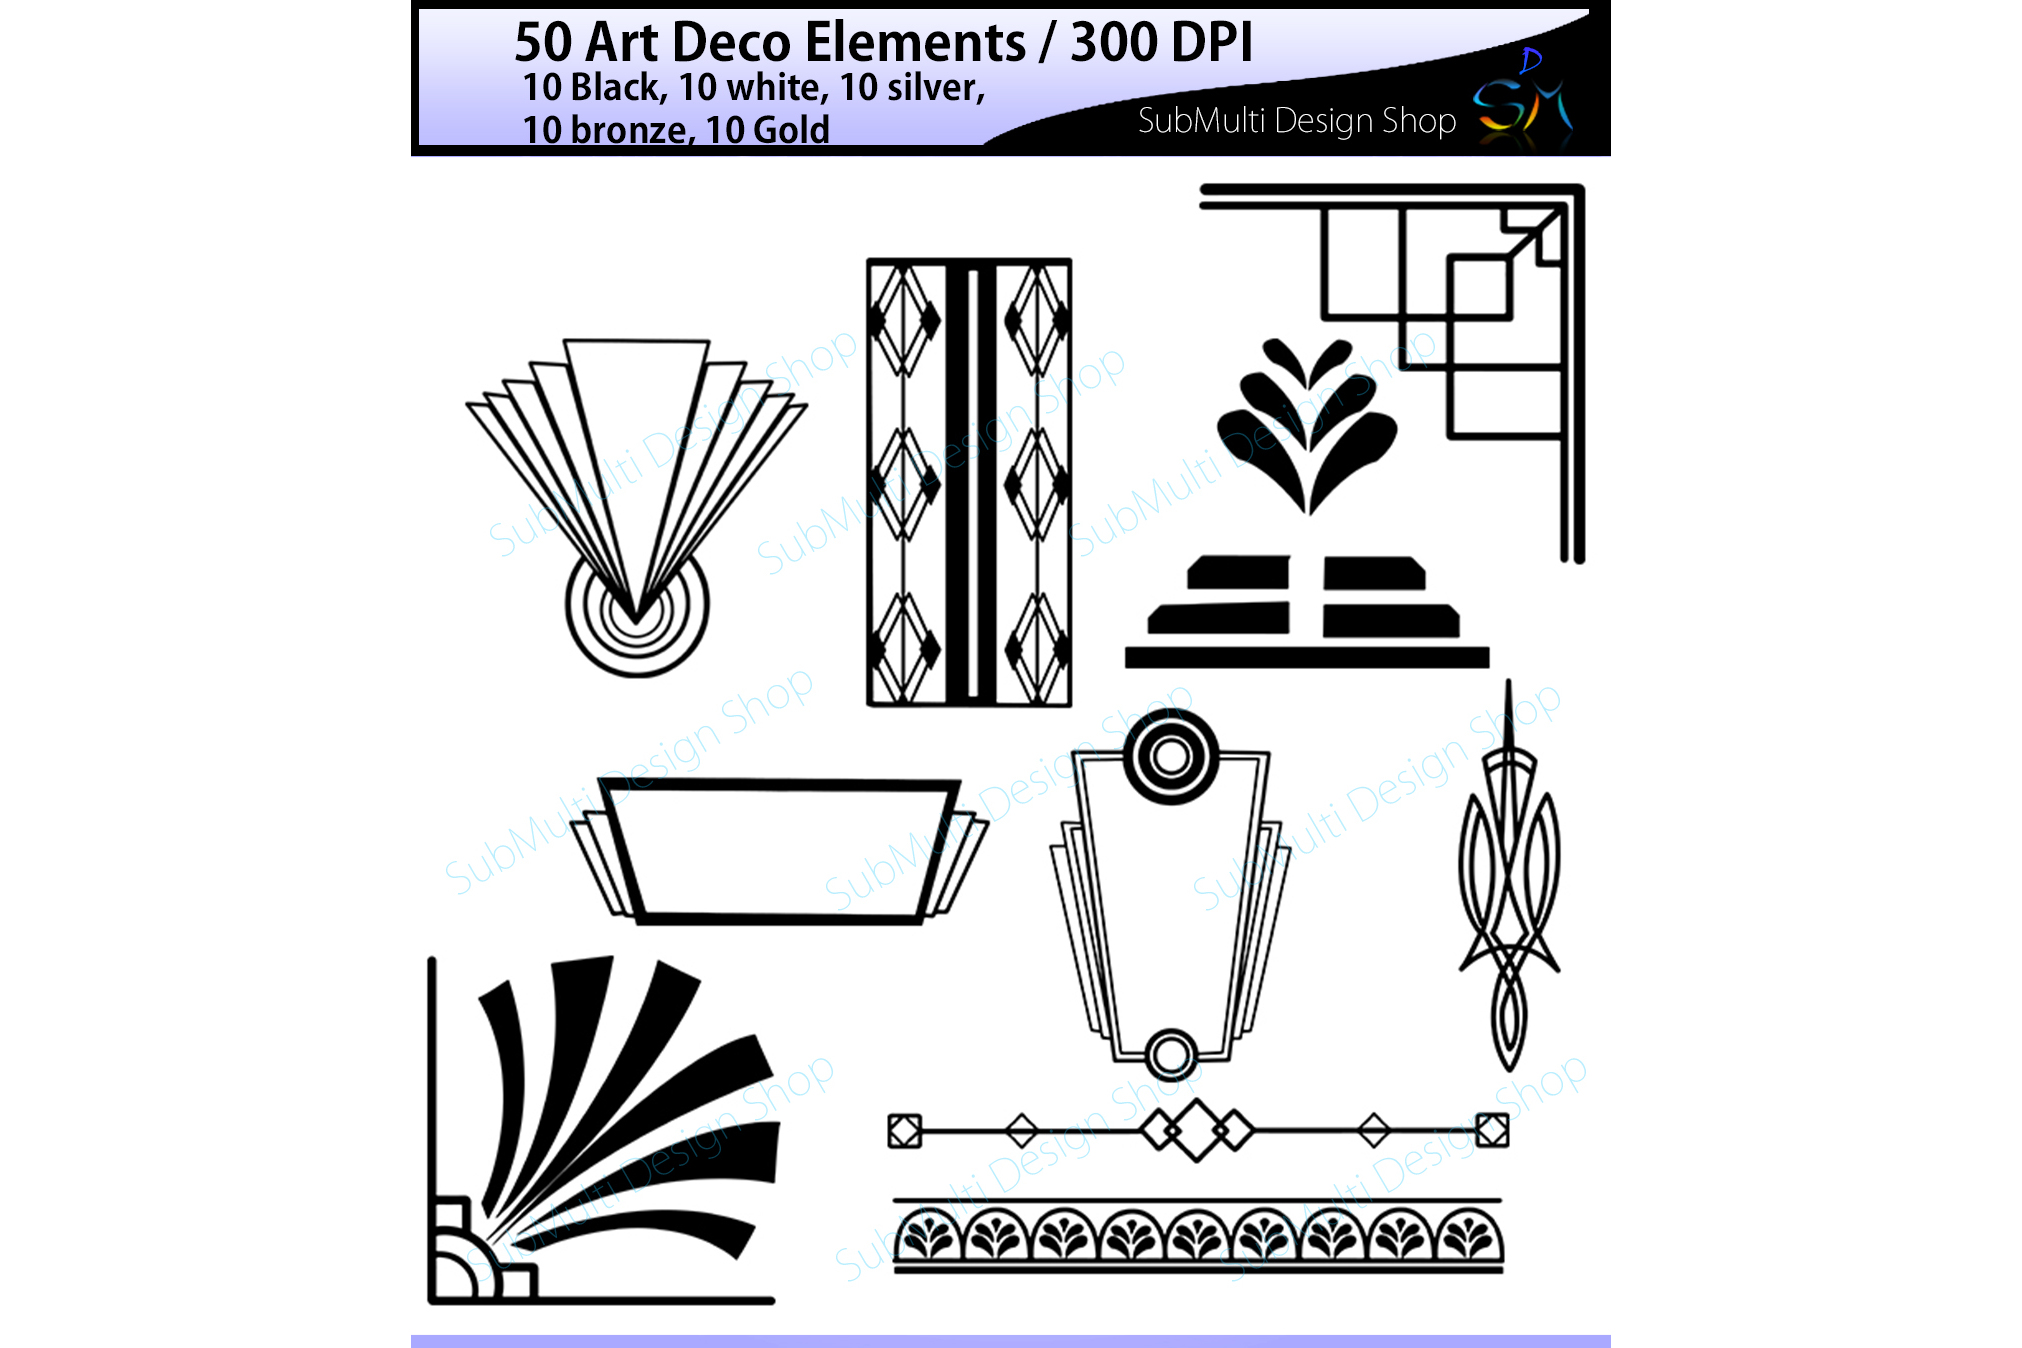 Art deco high quality art deco elem design bundles - Art deco design elements ...